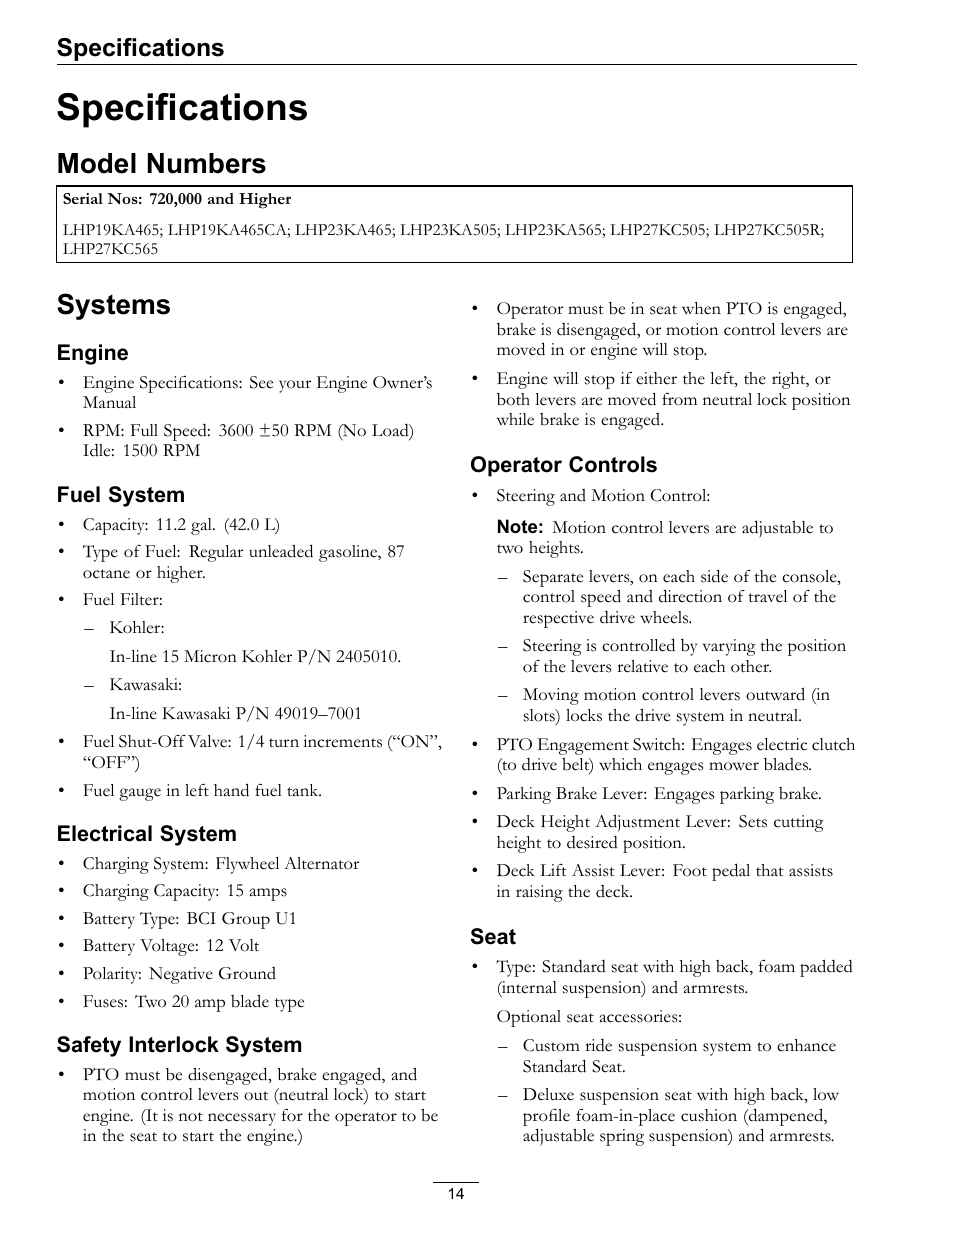 Specifications, Model numbers systems, Model numbers | Exmark Lazer Z HP  565 User Manual | Page 14 / 48